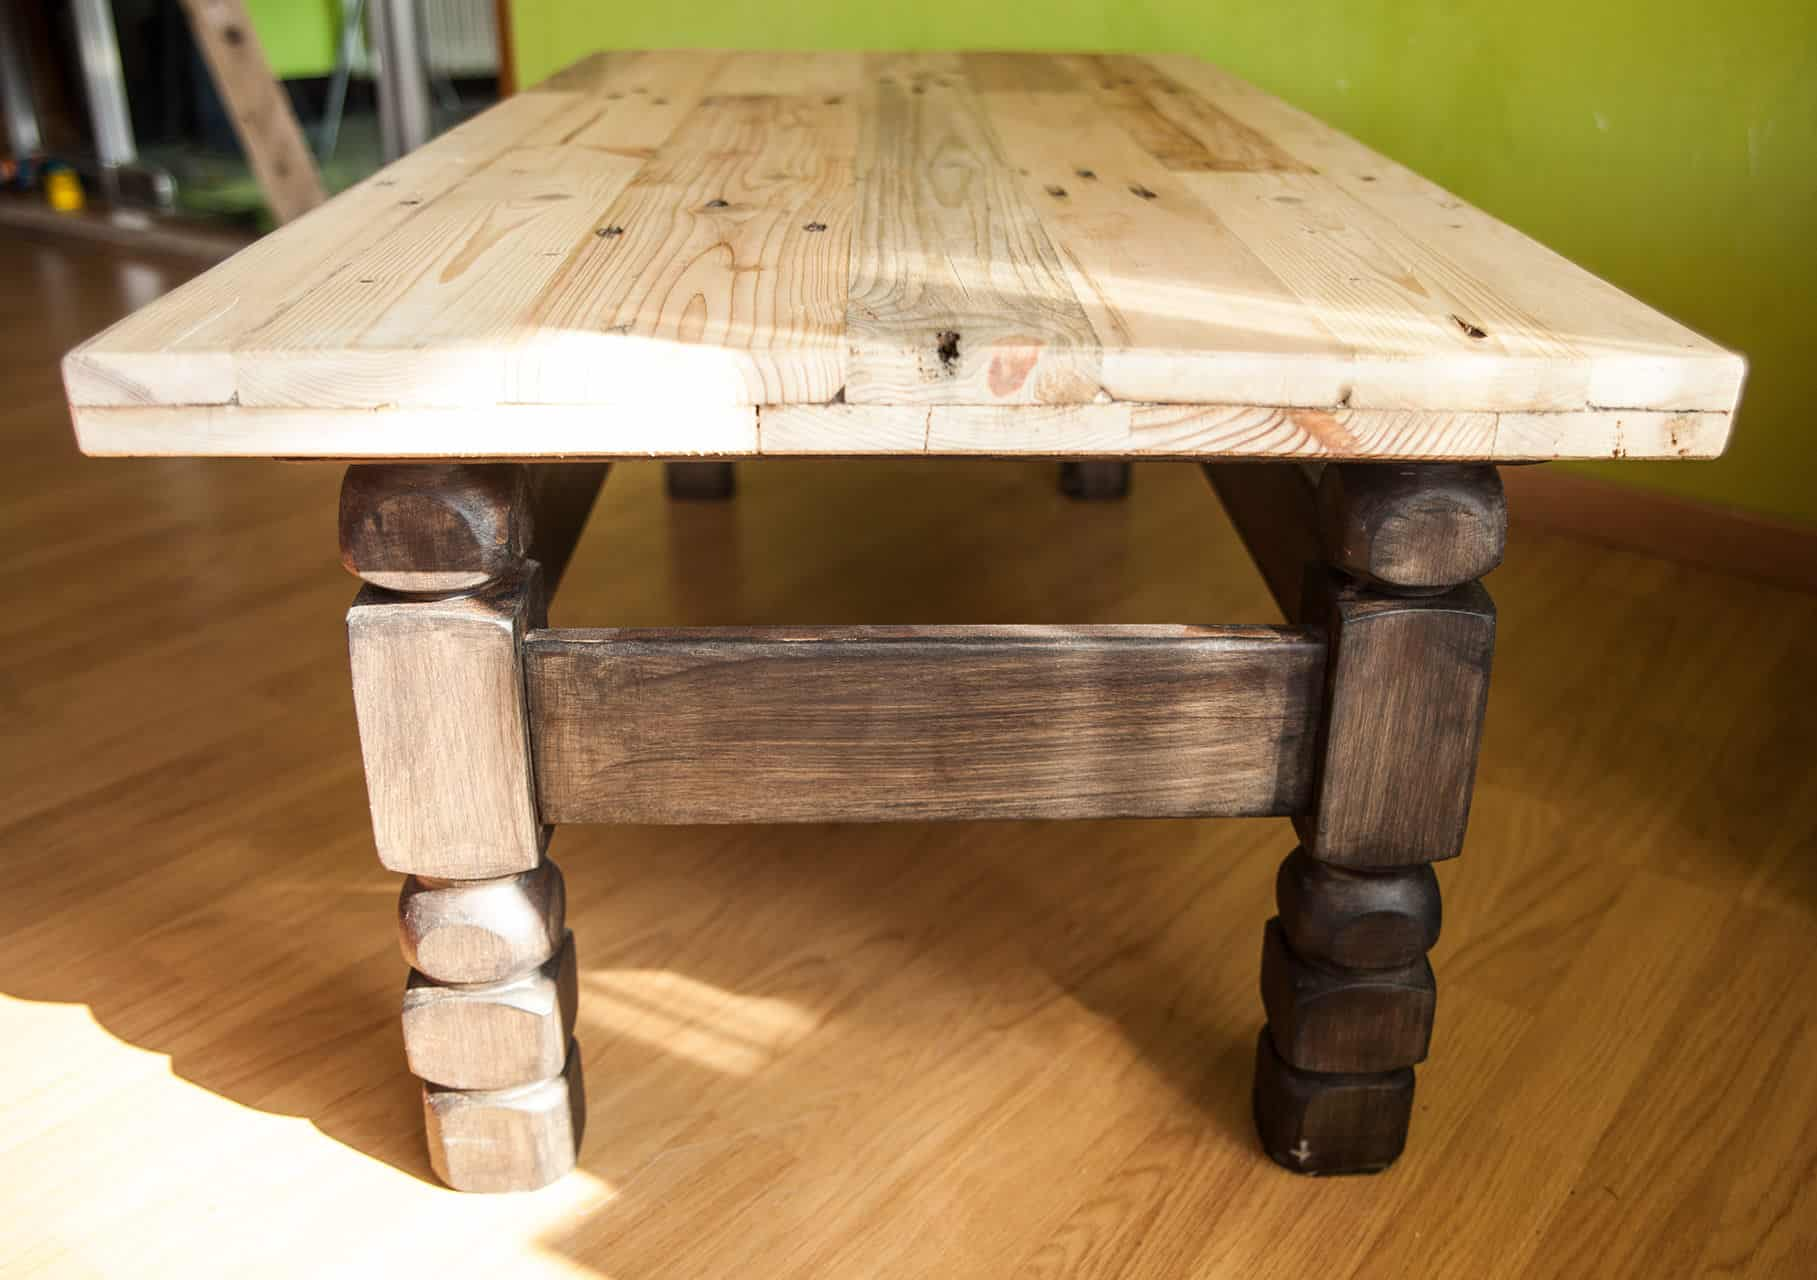 Pallet furniture coffee table - Diy Video Tutorial Pallet Coffee Table Renovation Pallet Ideas 1001 Pallets